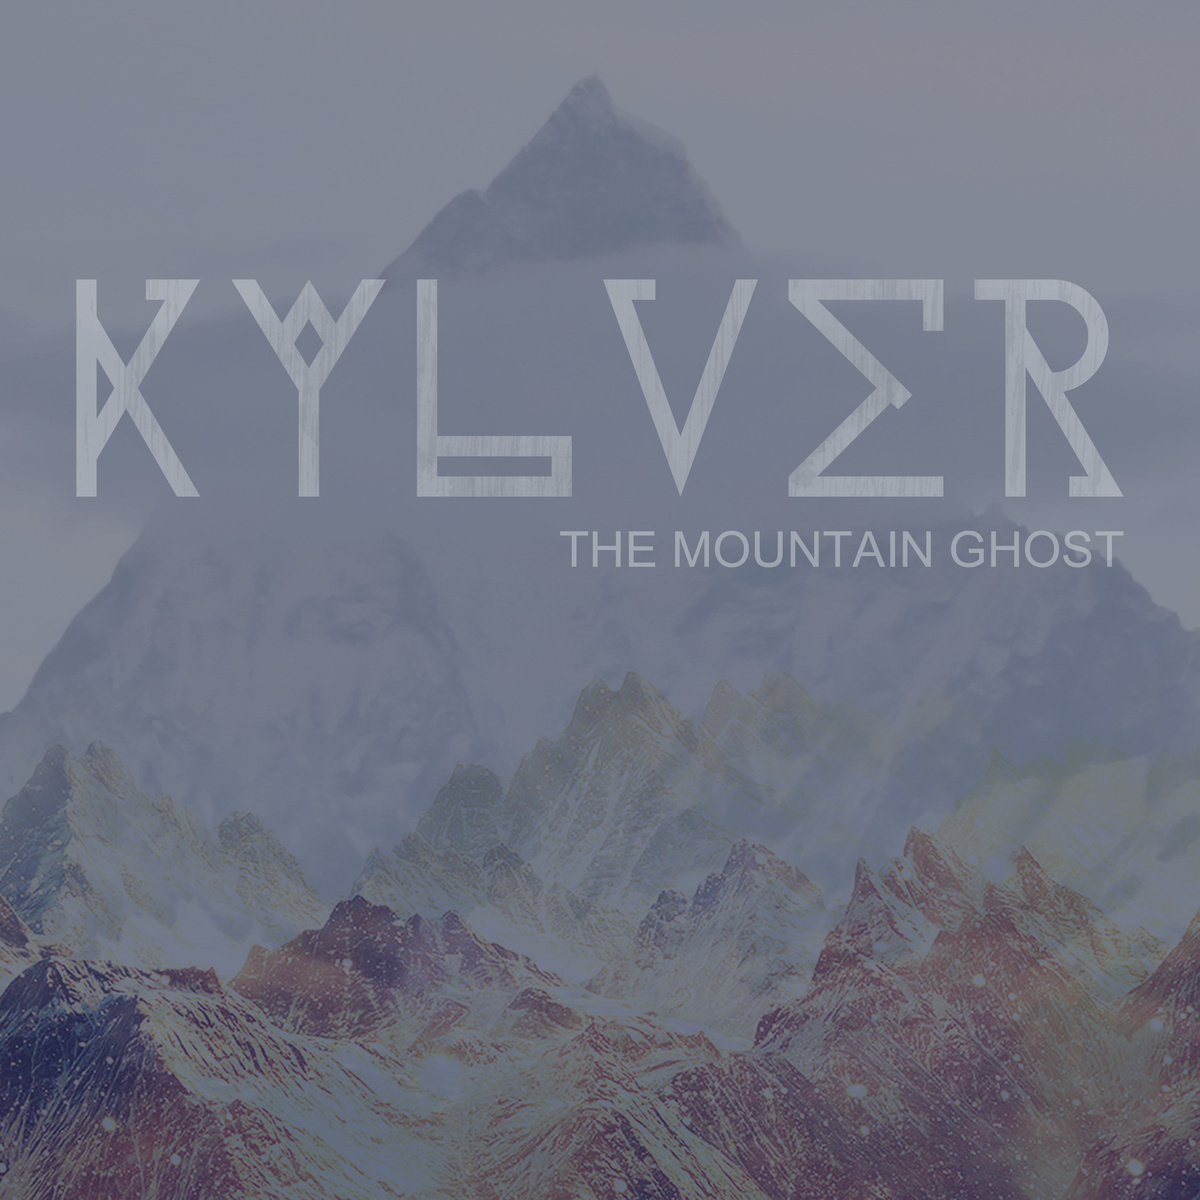 Kylver: The Mountain Ghost